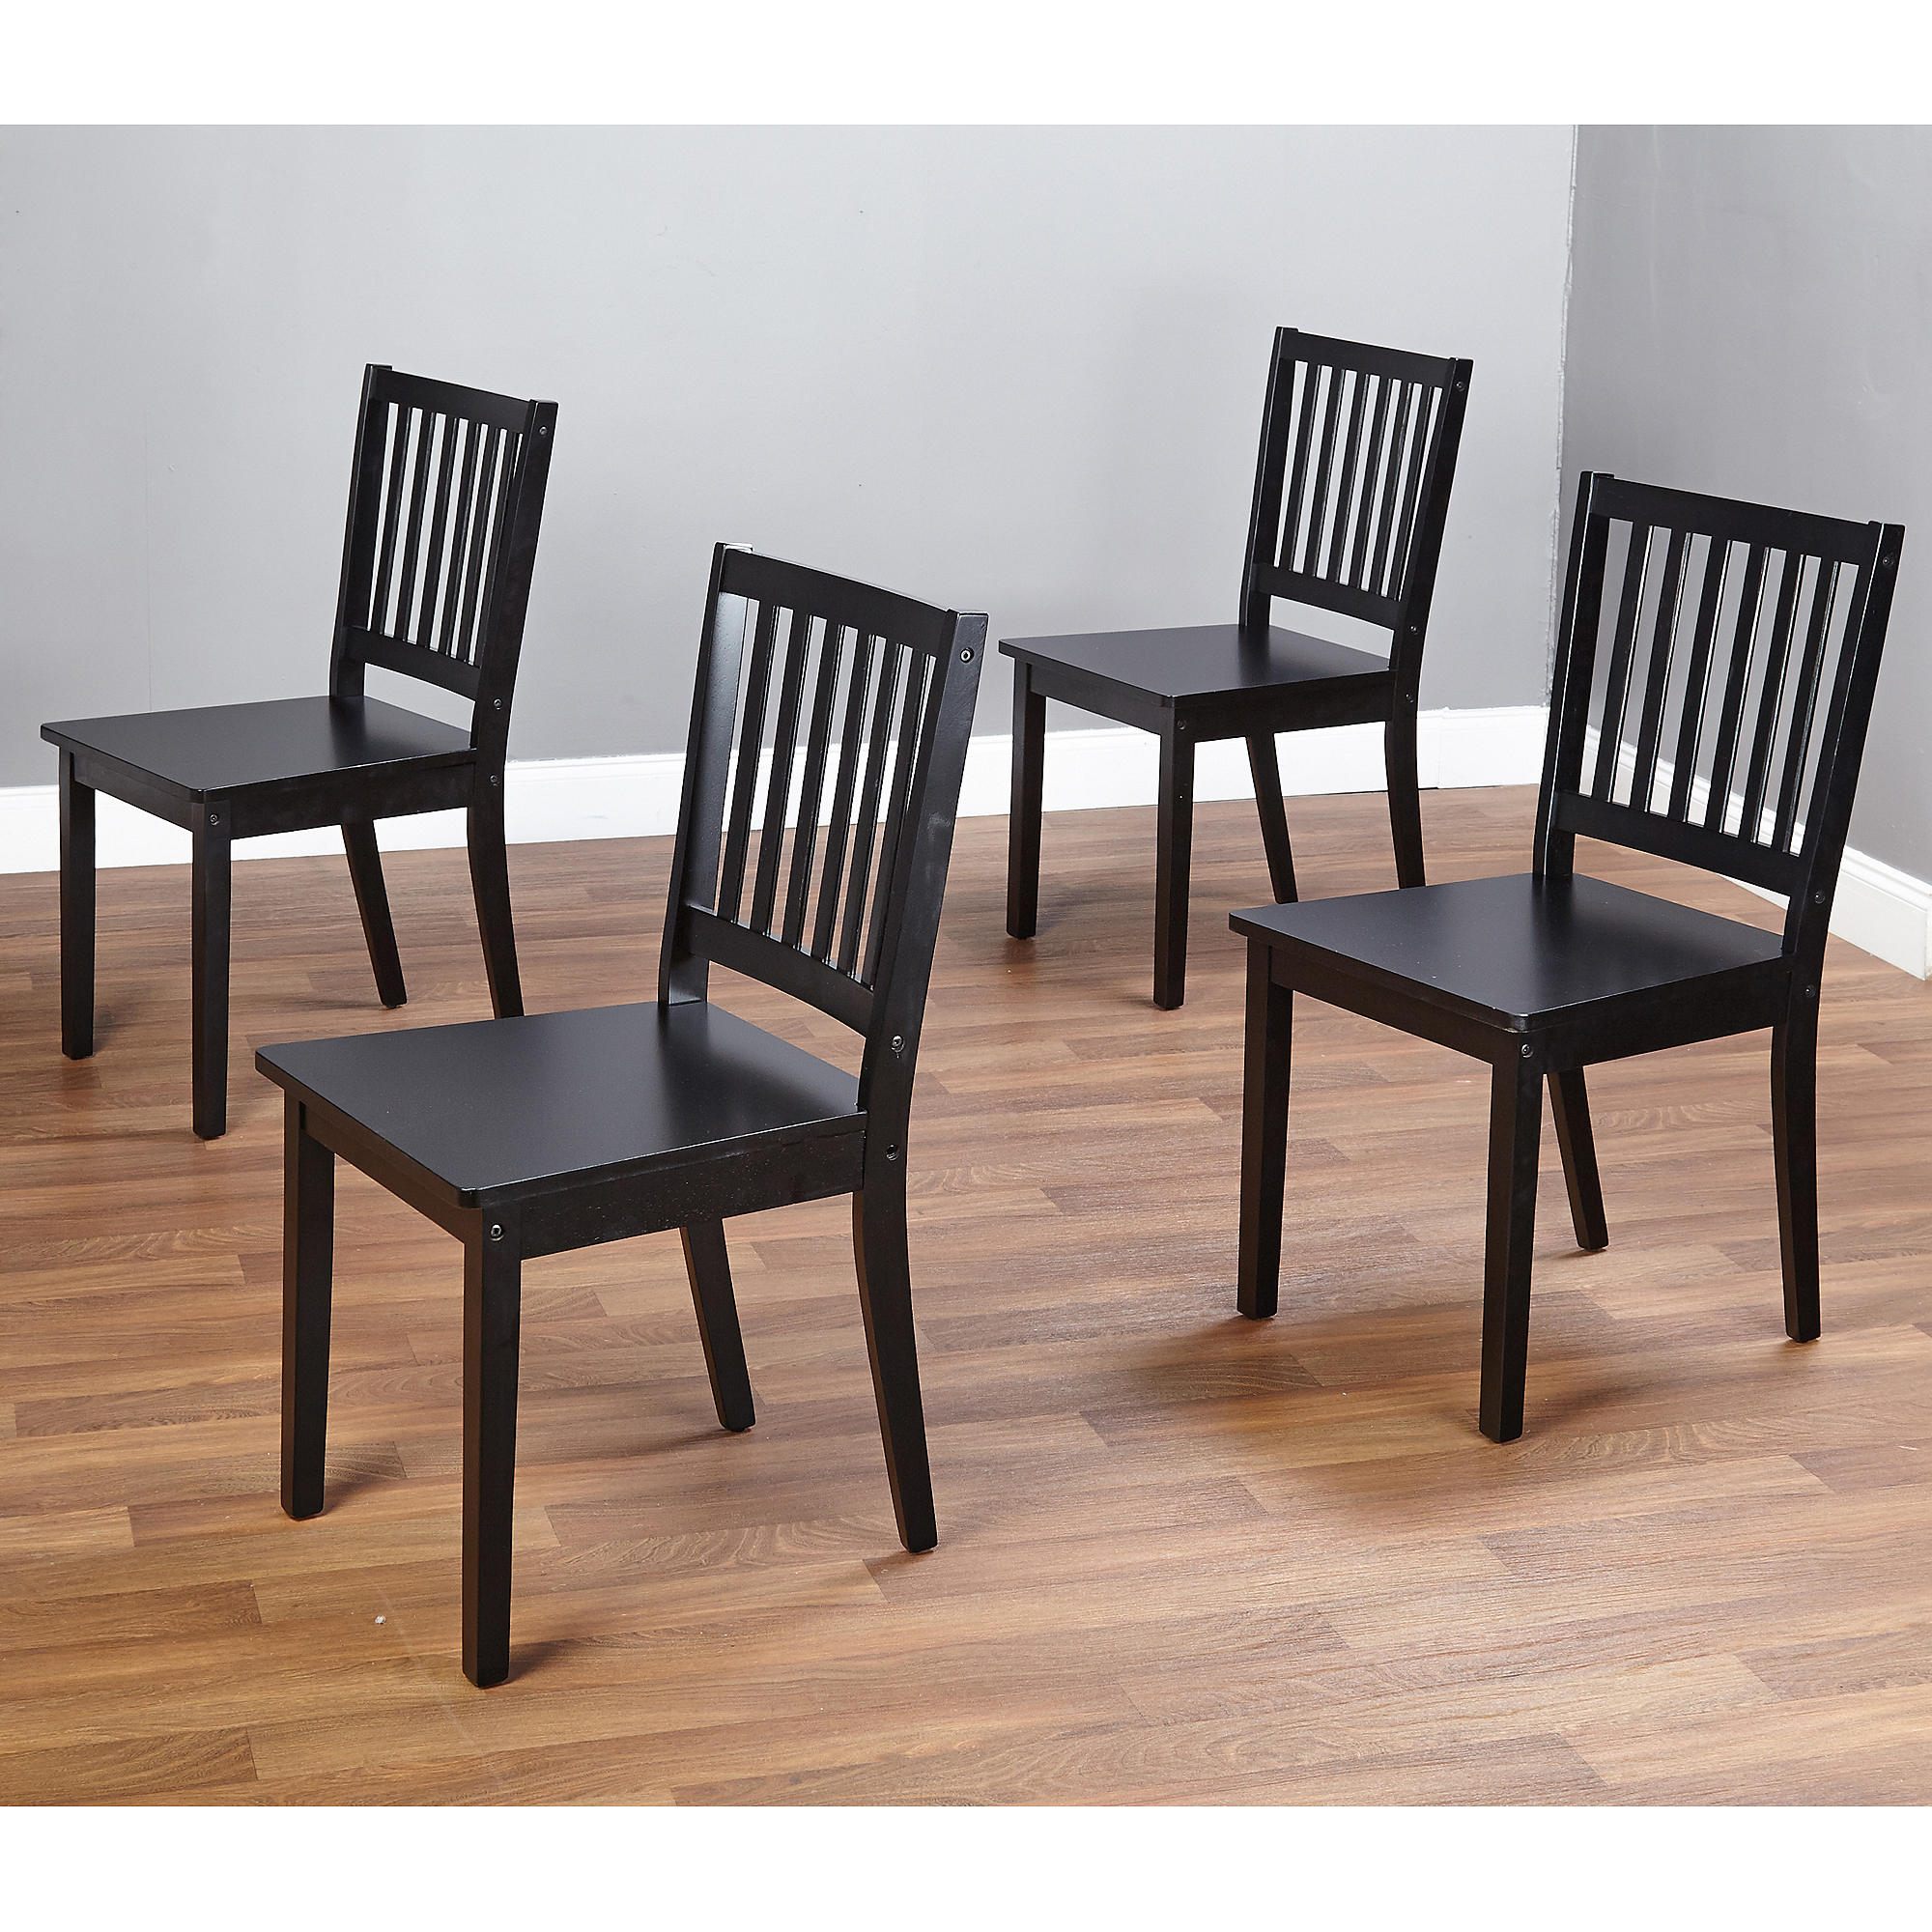 Shaker Dining Chairs, Set of 4, Black